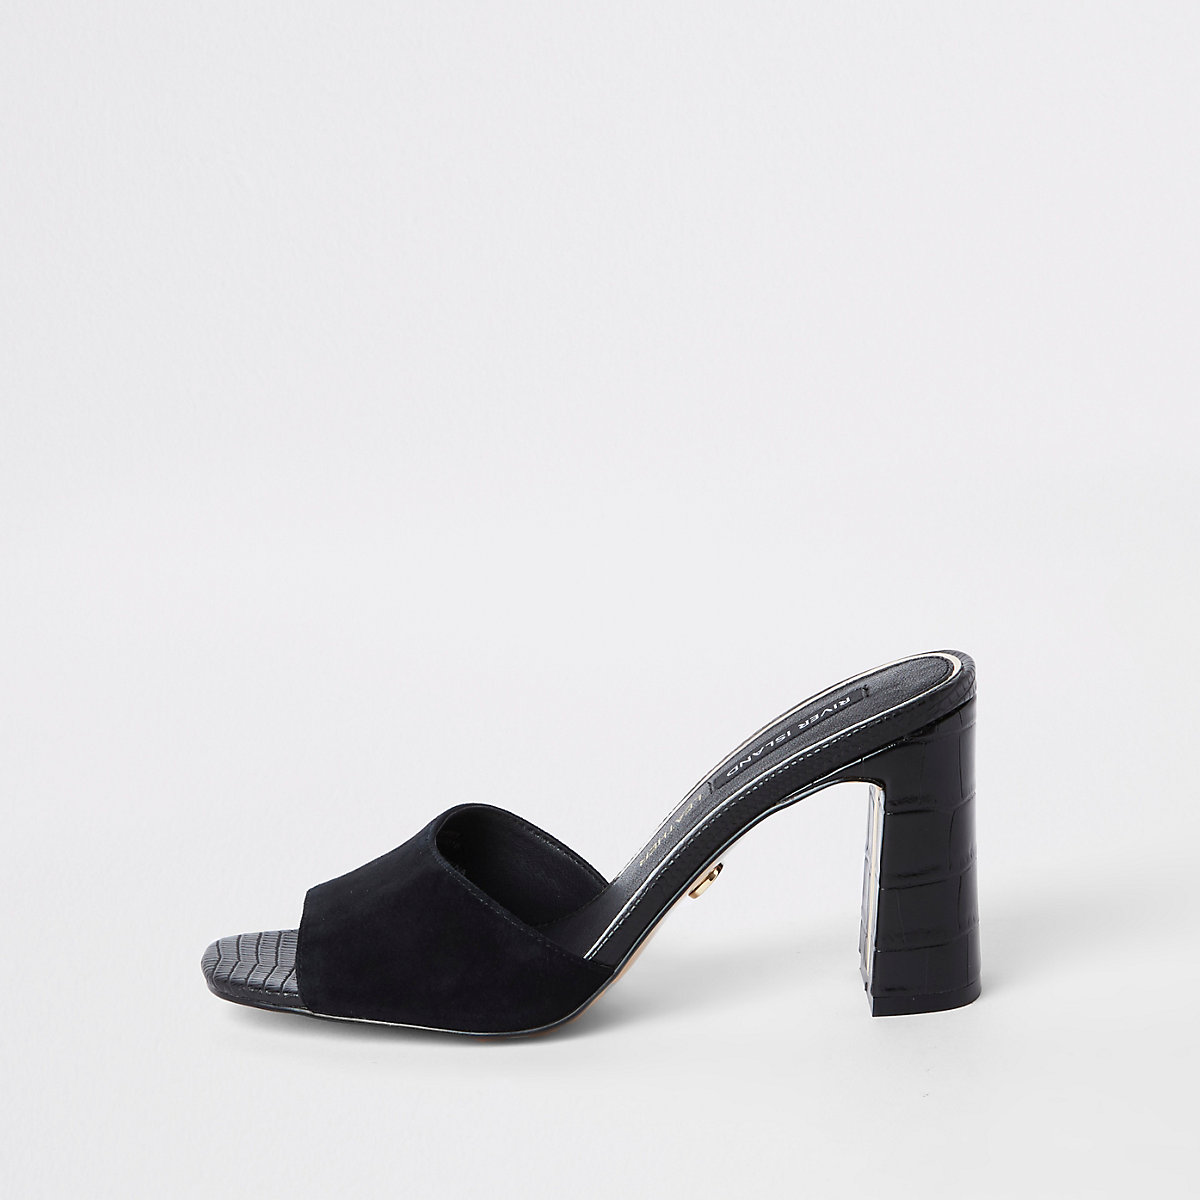 Black leather heel mule sandals